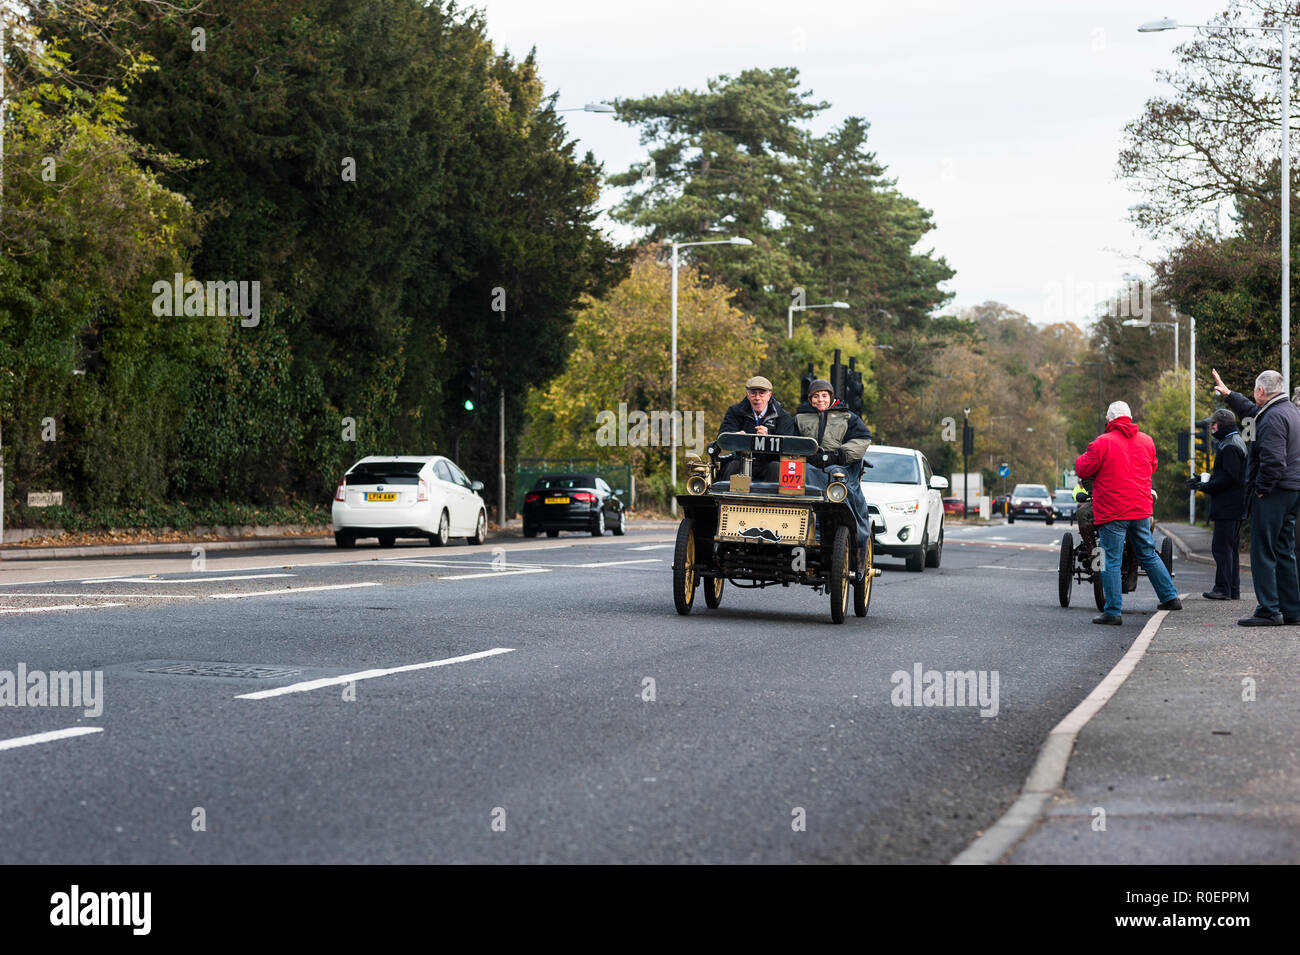 Brighton, East Sussex. 4th November 2018. Drivers pass spectators along the A23 in Hooley, Coulson, during the annual London to Brighton Veteran Car Run. Credit: Francesca Moore/Alamy Live News - Stock Image